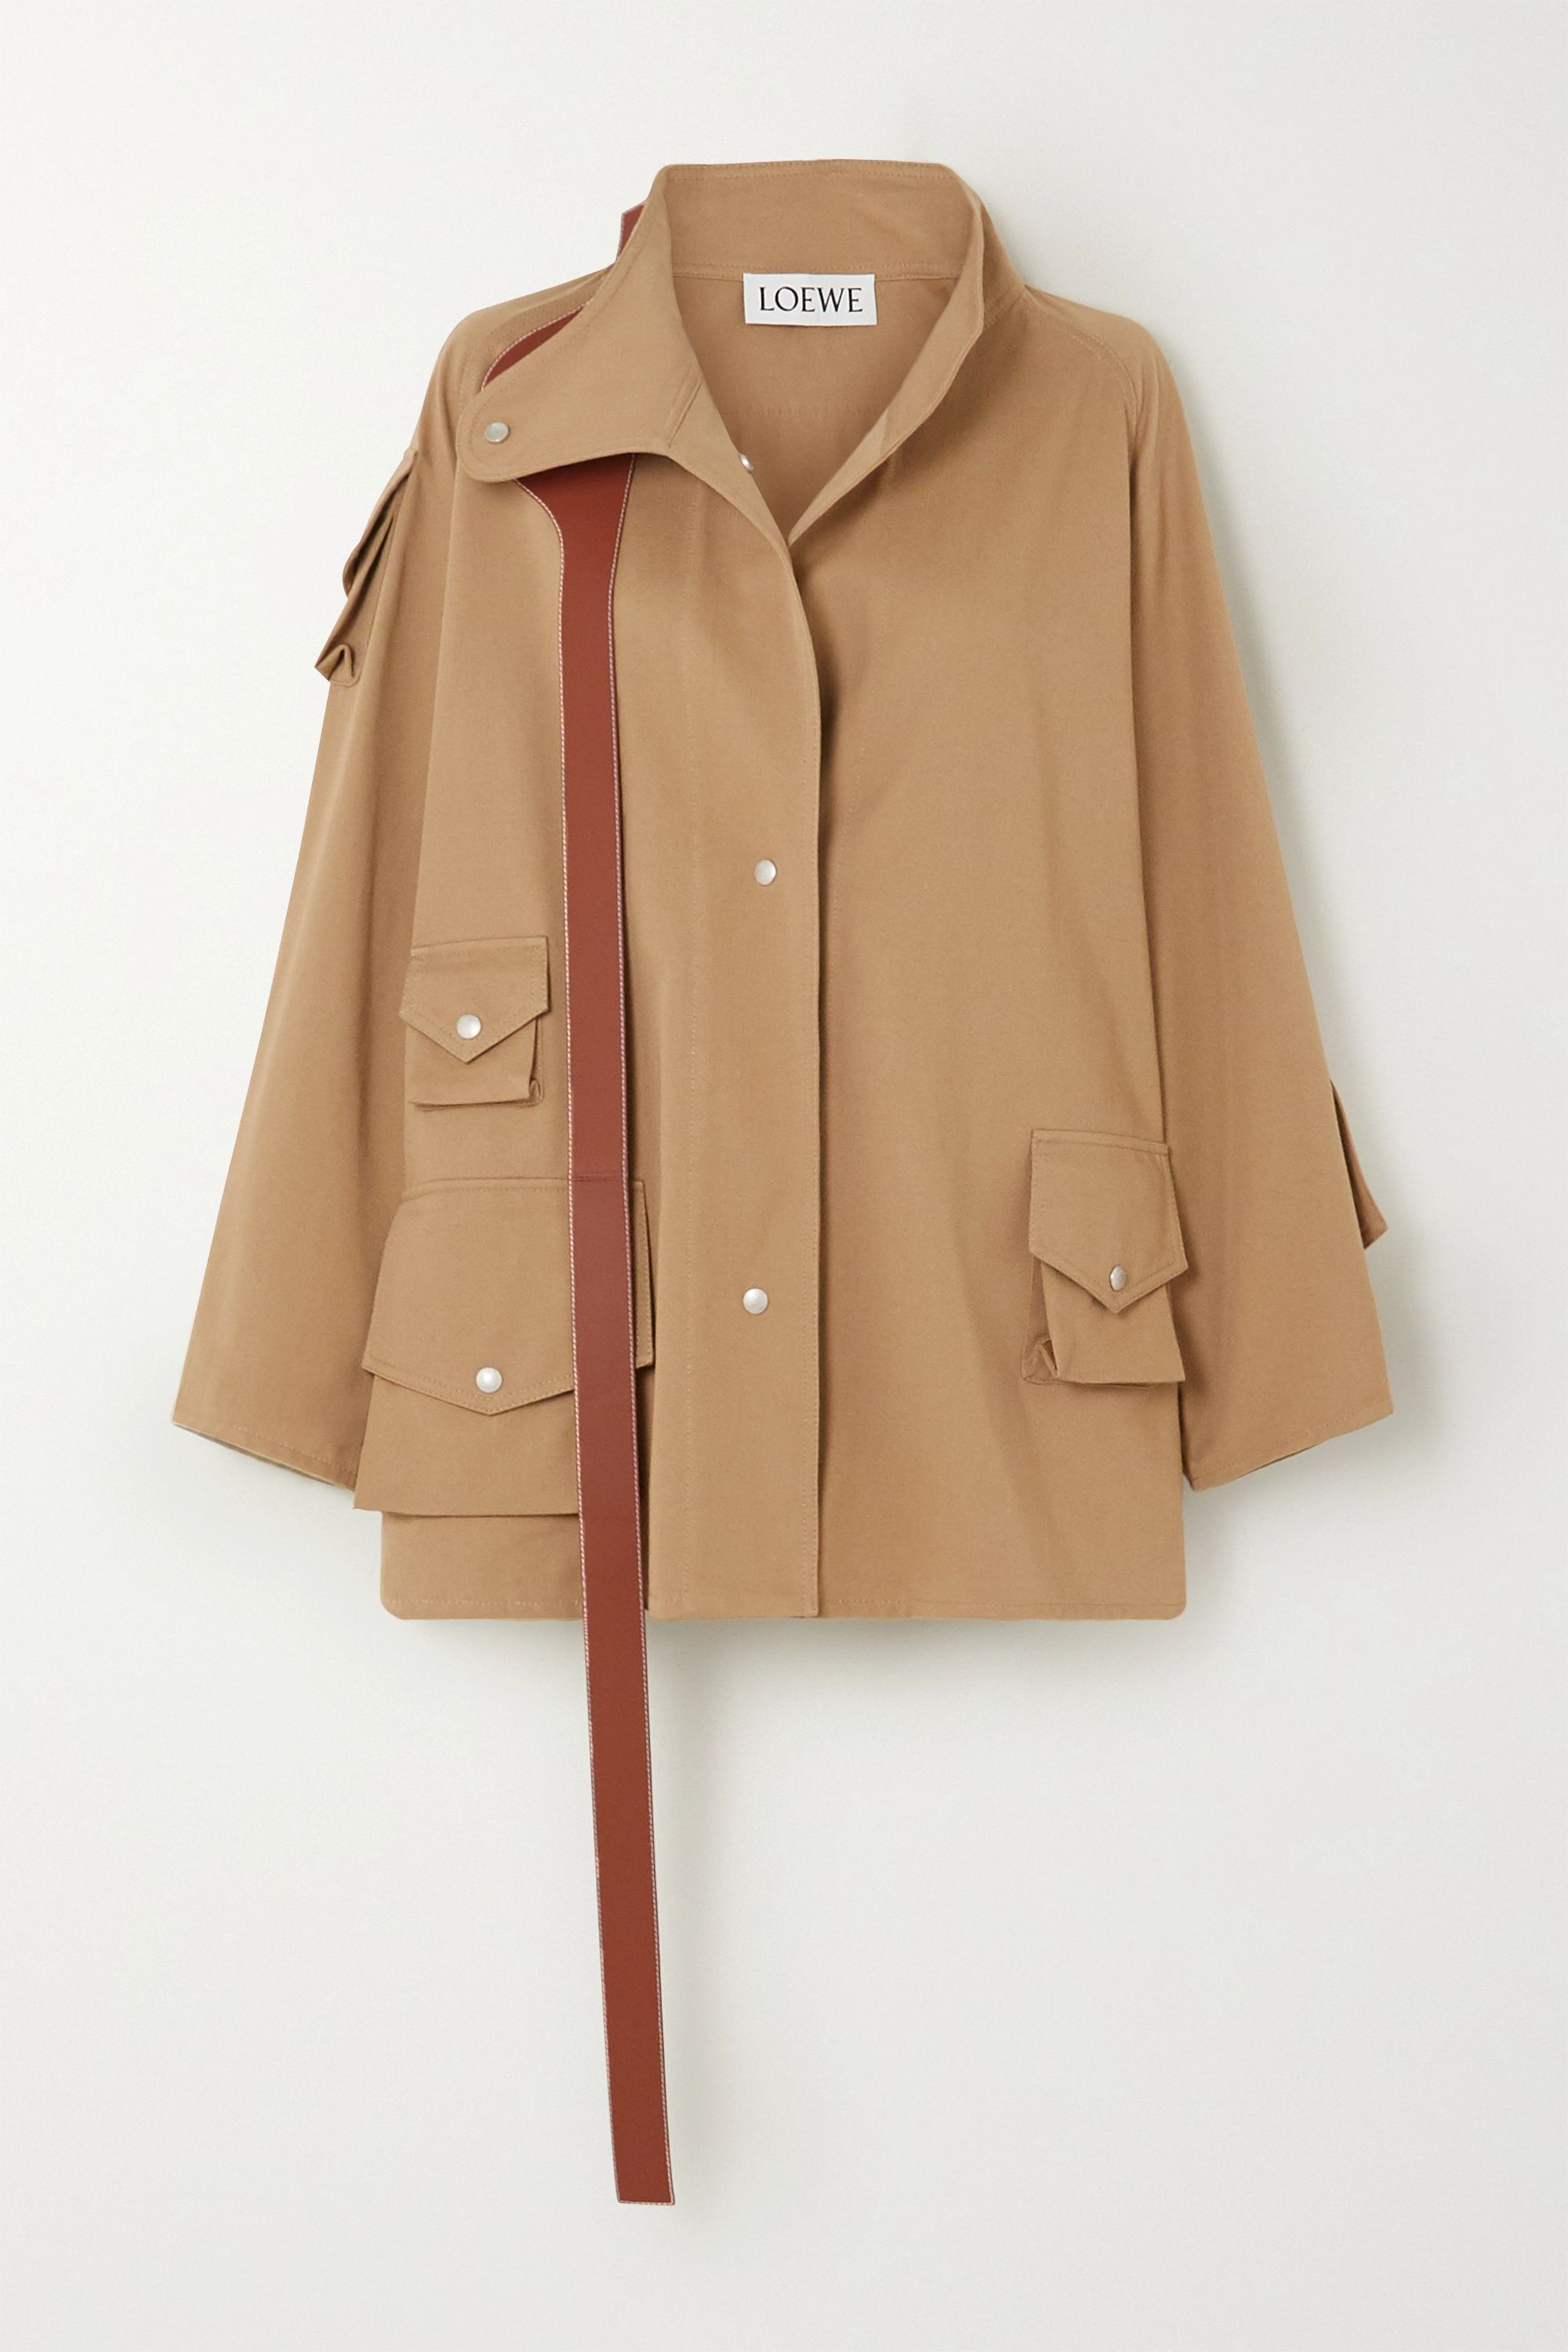 Loewe Oversized leather-trimmed cotton-twill parka